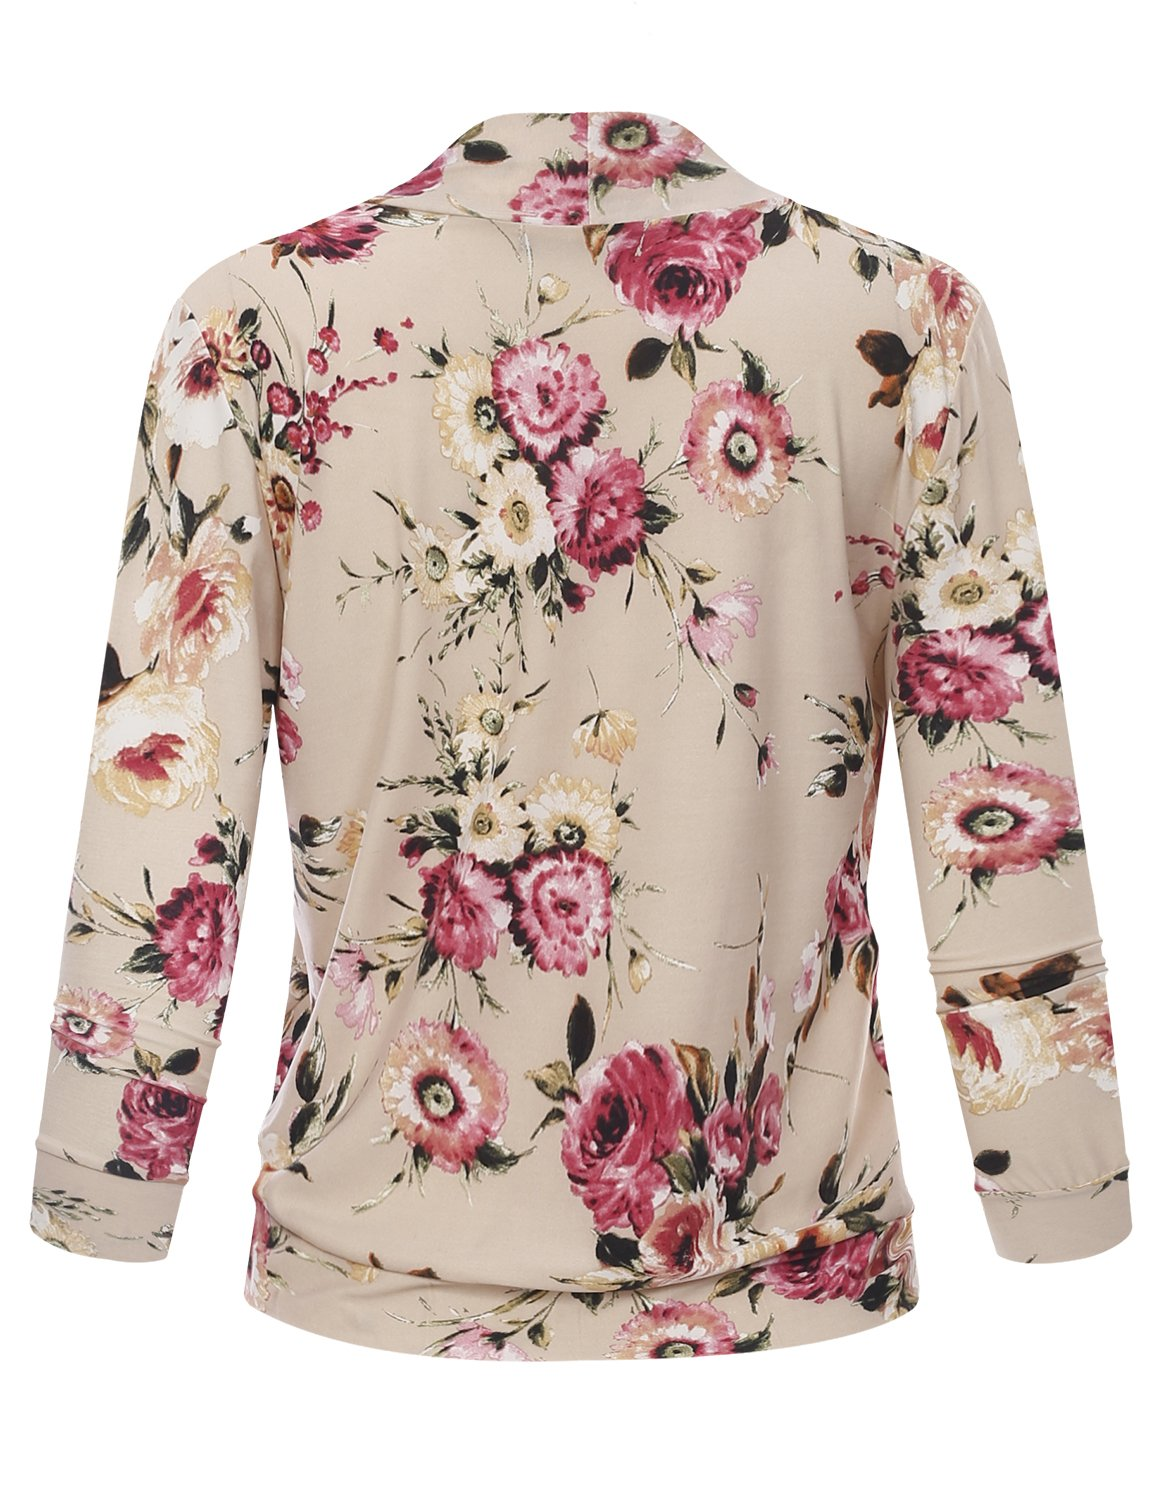 BILY Women's Classic Open Front Cropped 3/4 Sleeve Floral Print Cardigan 11992 Stone Medium by B.I.L.Y (Image #3)